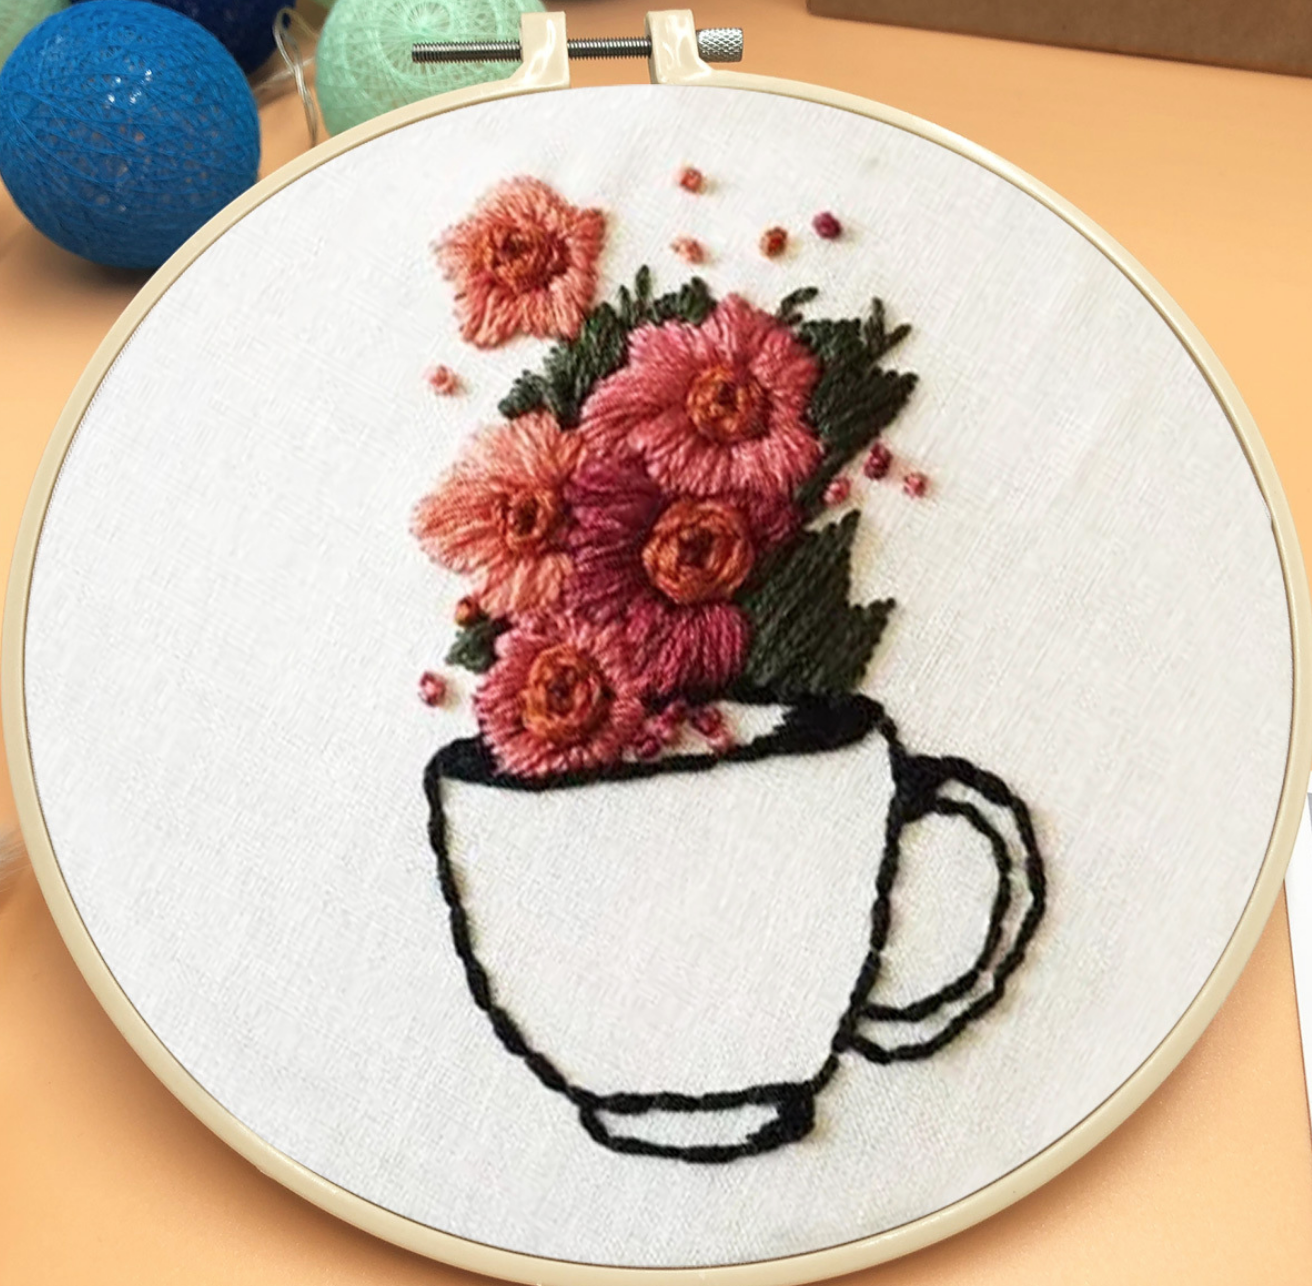 Cup with Flowers Embroidery